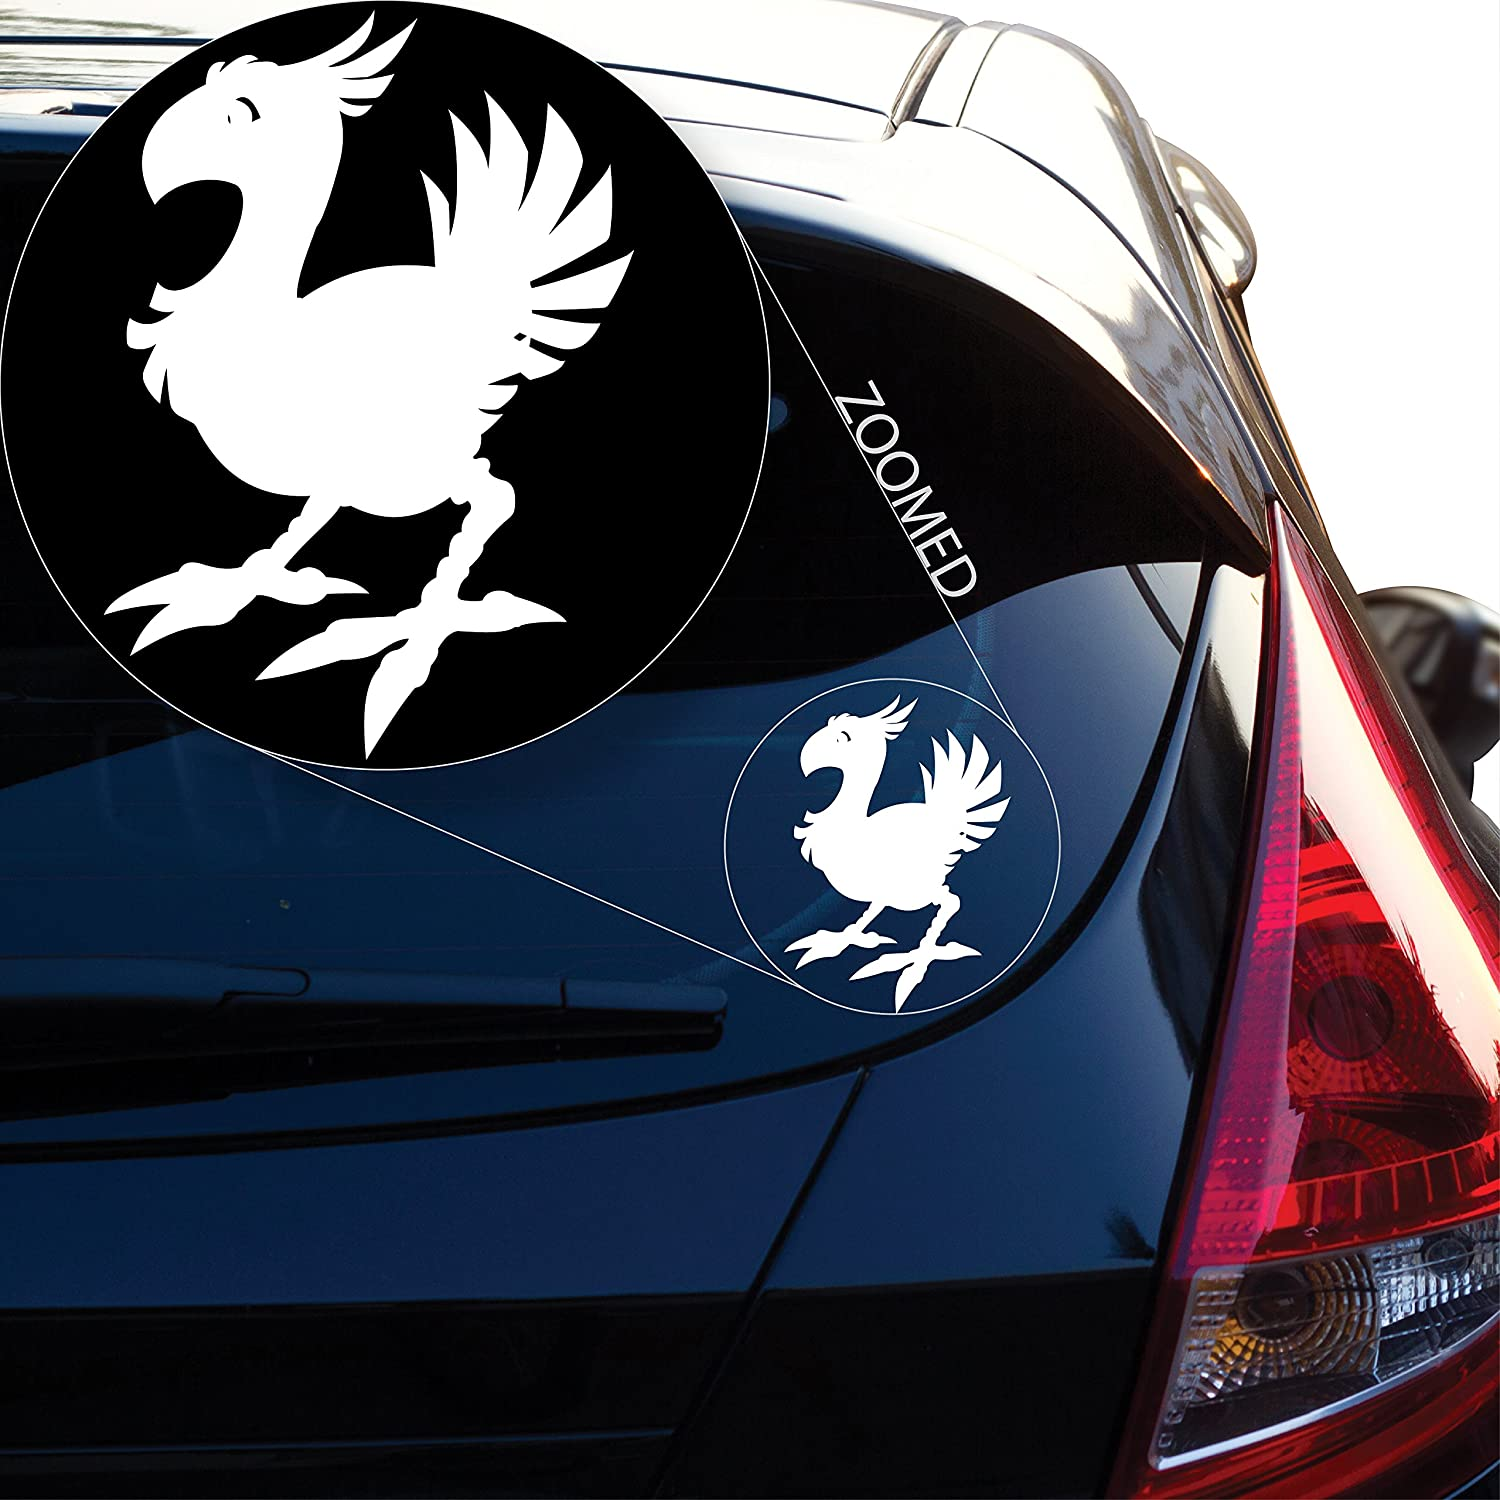 Laptop and More # 806 6 x 4.2 805 6 x 4.2, White # 806 Yoonek Graphics Chocobo Final Fantasy 7 Decal Sticker for Car Window Laptop and More